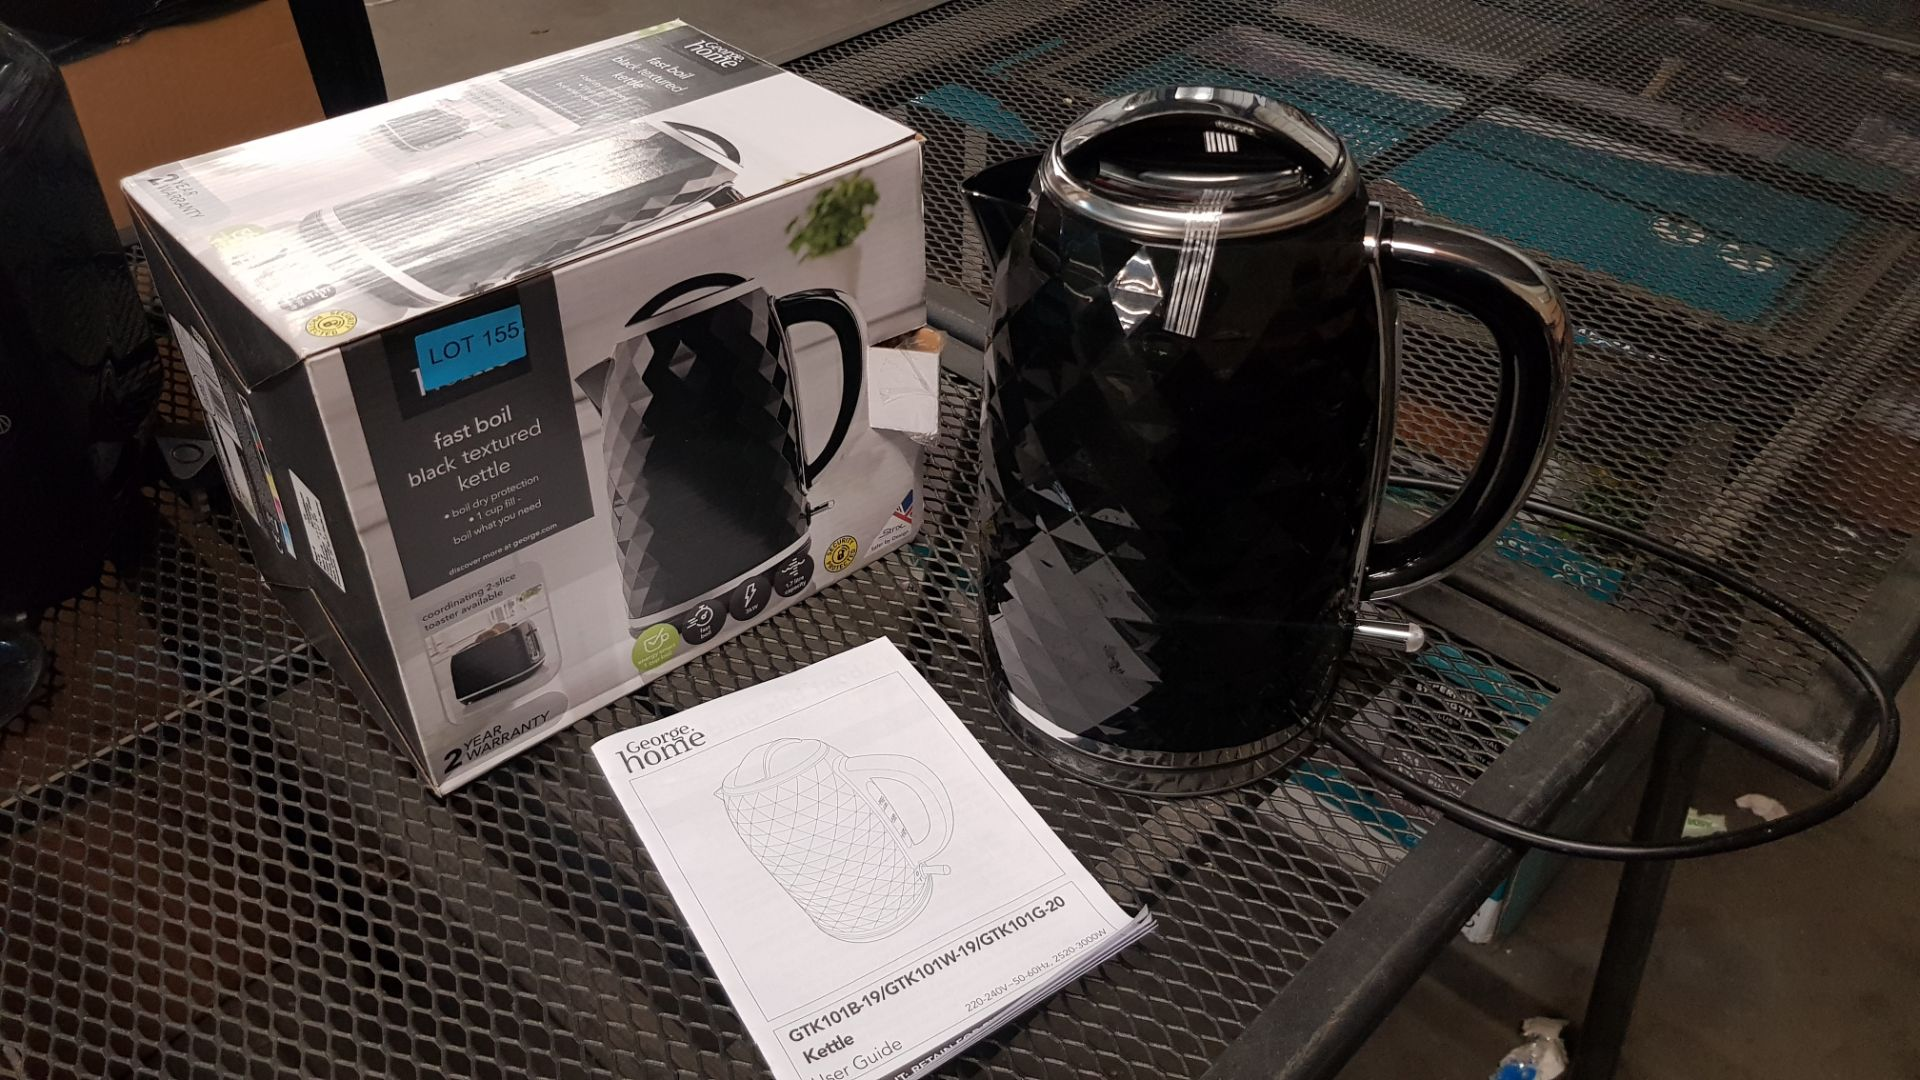 (15) 4x Items, 1x Toshiba Rapid Boiling Electric Kettle Cream. 1x Toshiba Rapid Boiling Electric Ke - Image 10 of 12